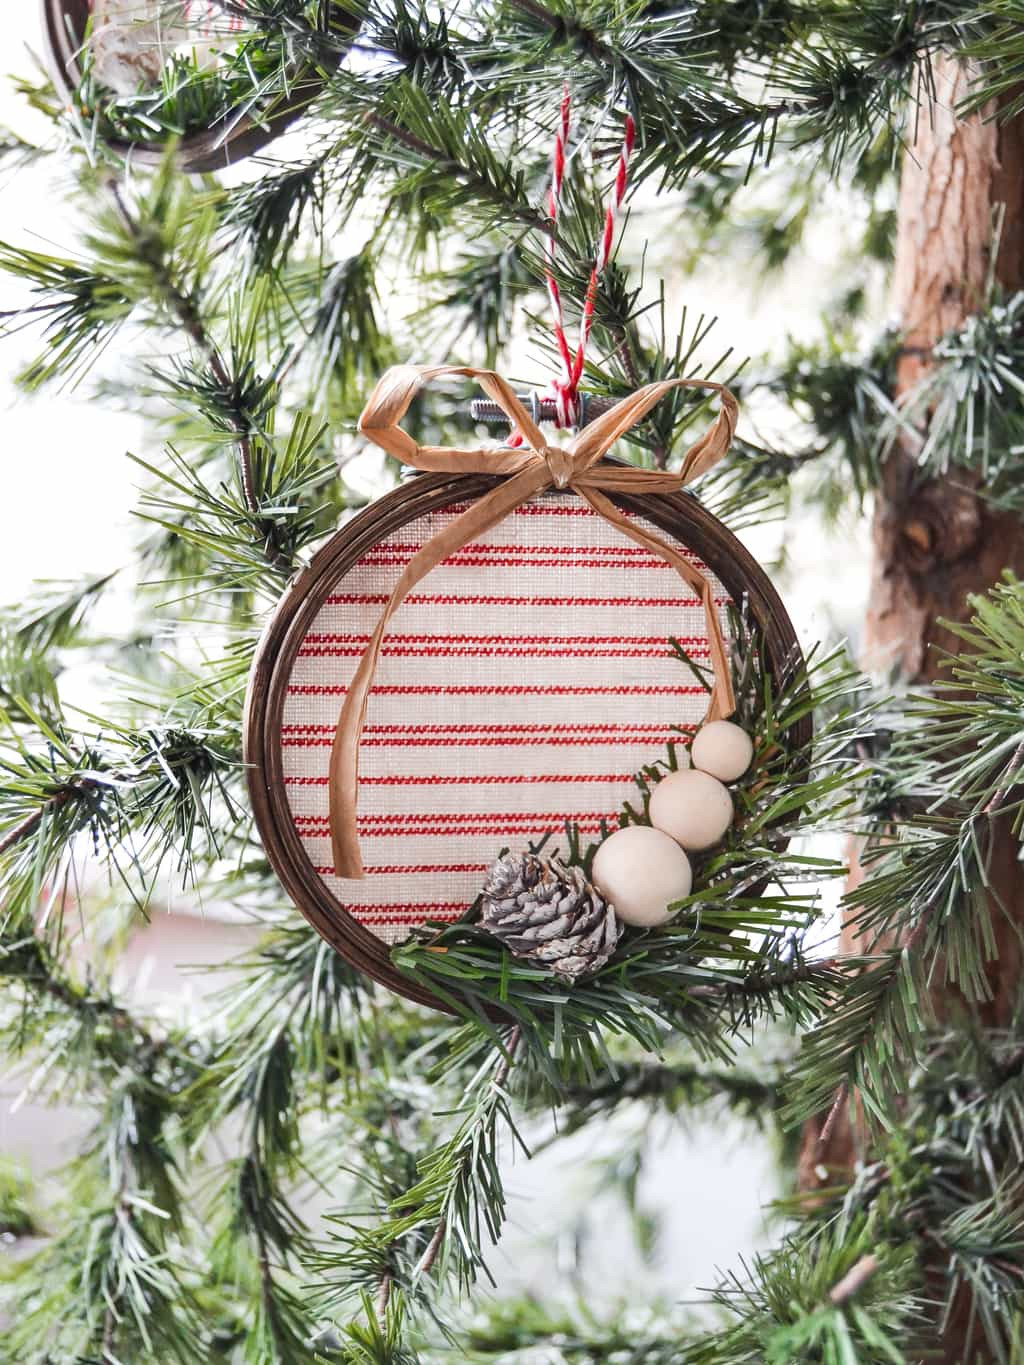 Best ideas about DIY Christmas Balls . Save or Pin Homemade Christmas Ornaments 90 Options My Creative Days Now.